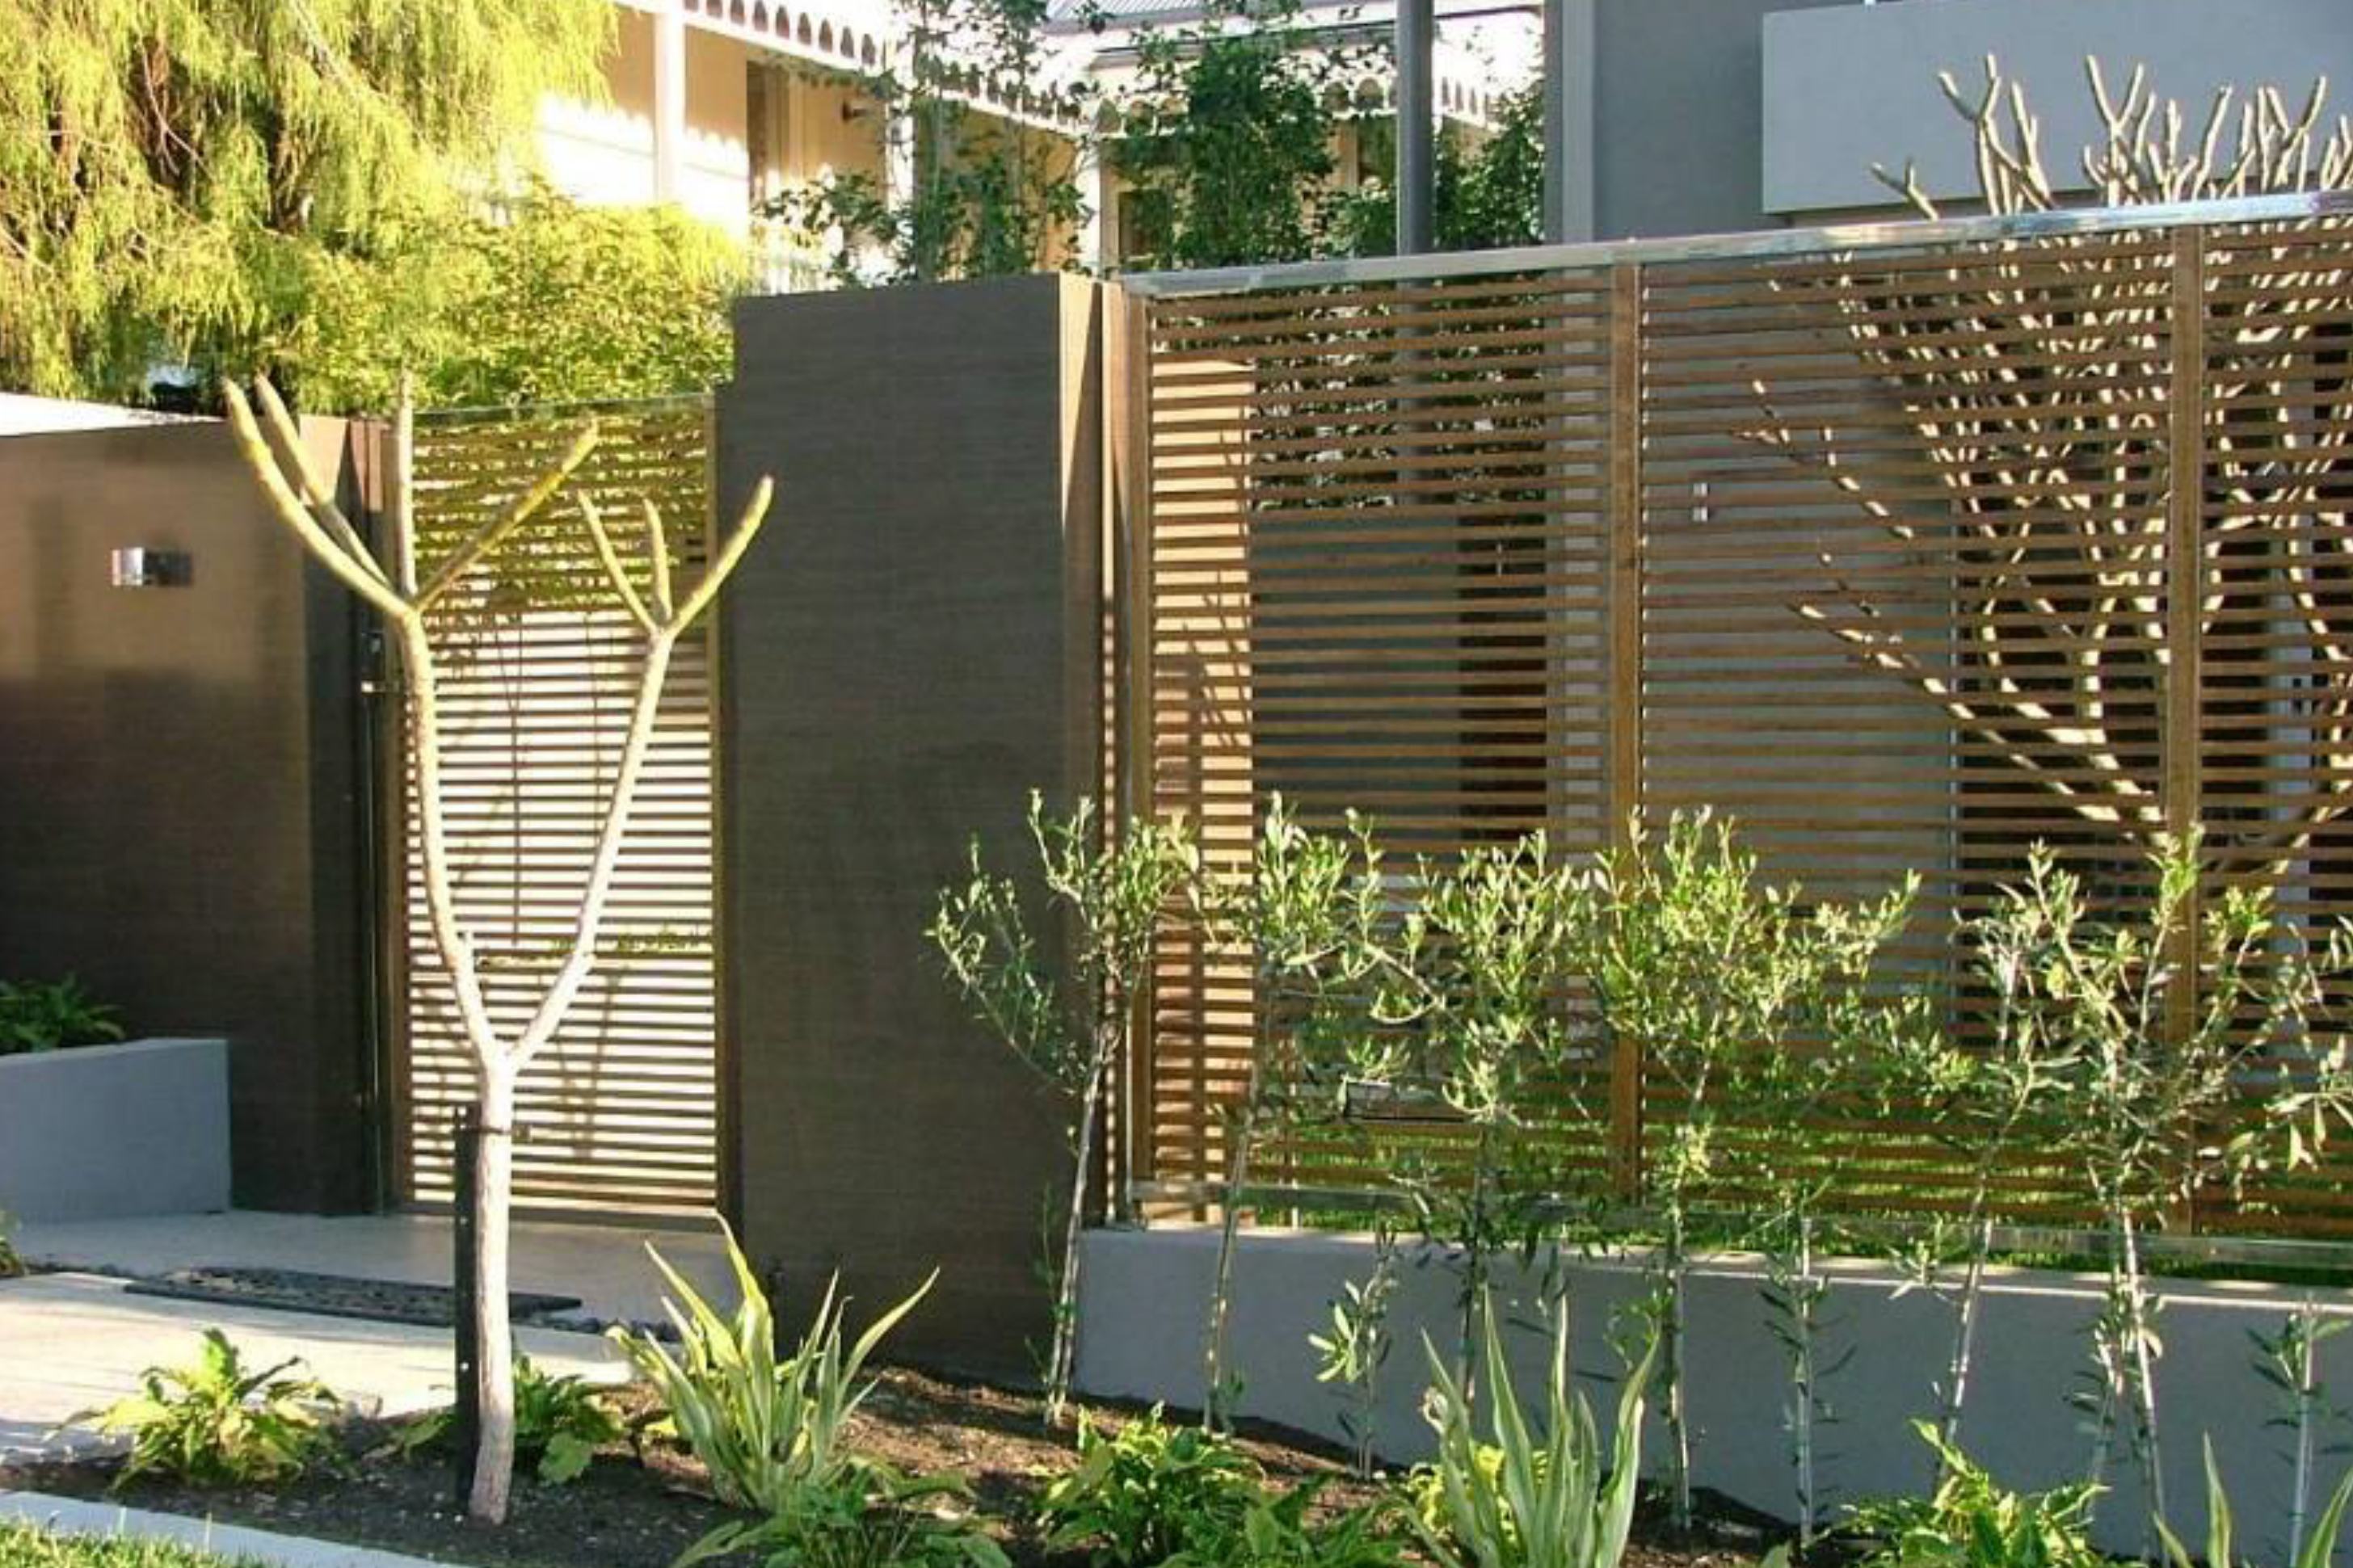 Aliquantum Stainless Steel Screens, Perth